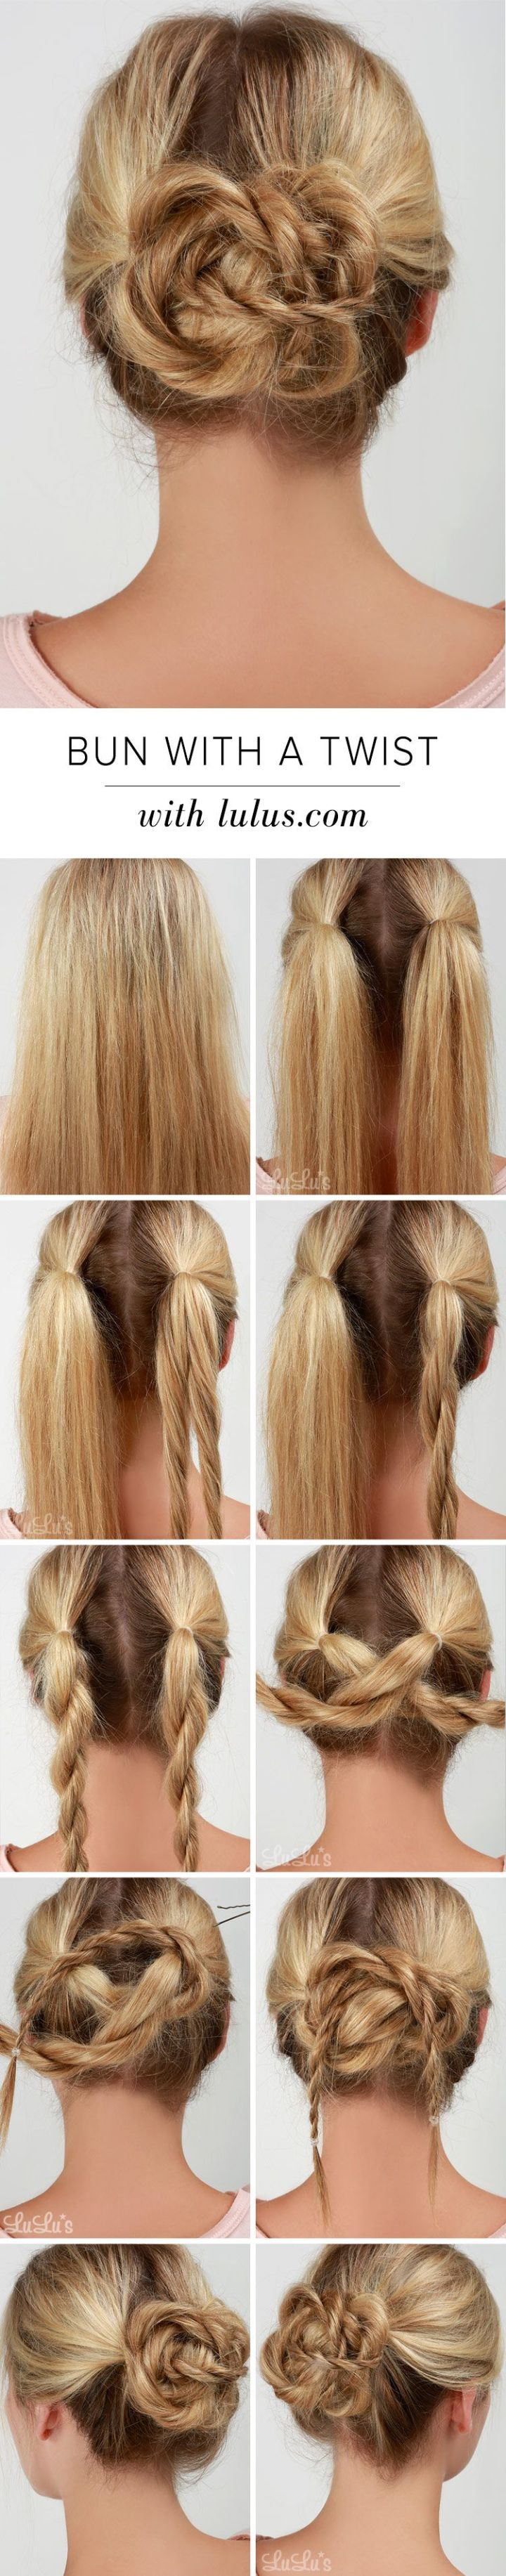 Inspirational Easy Bun Hairstyles – Hairstyle Ideas